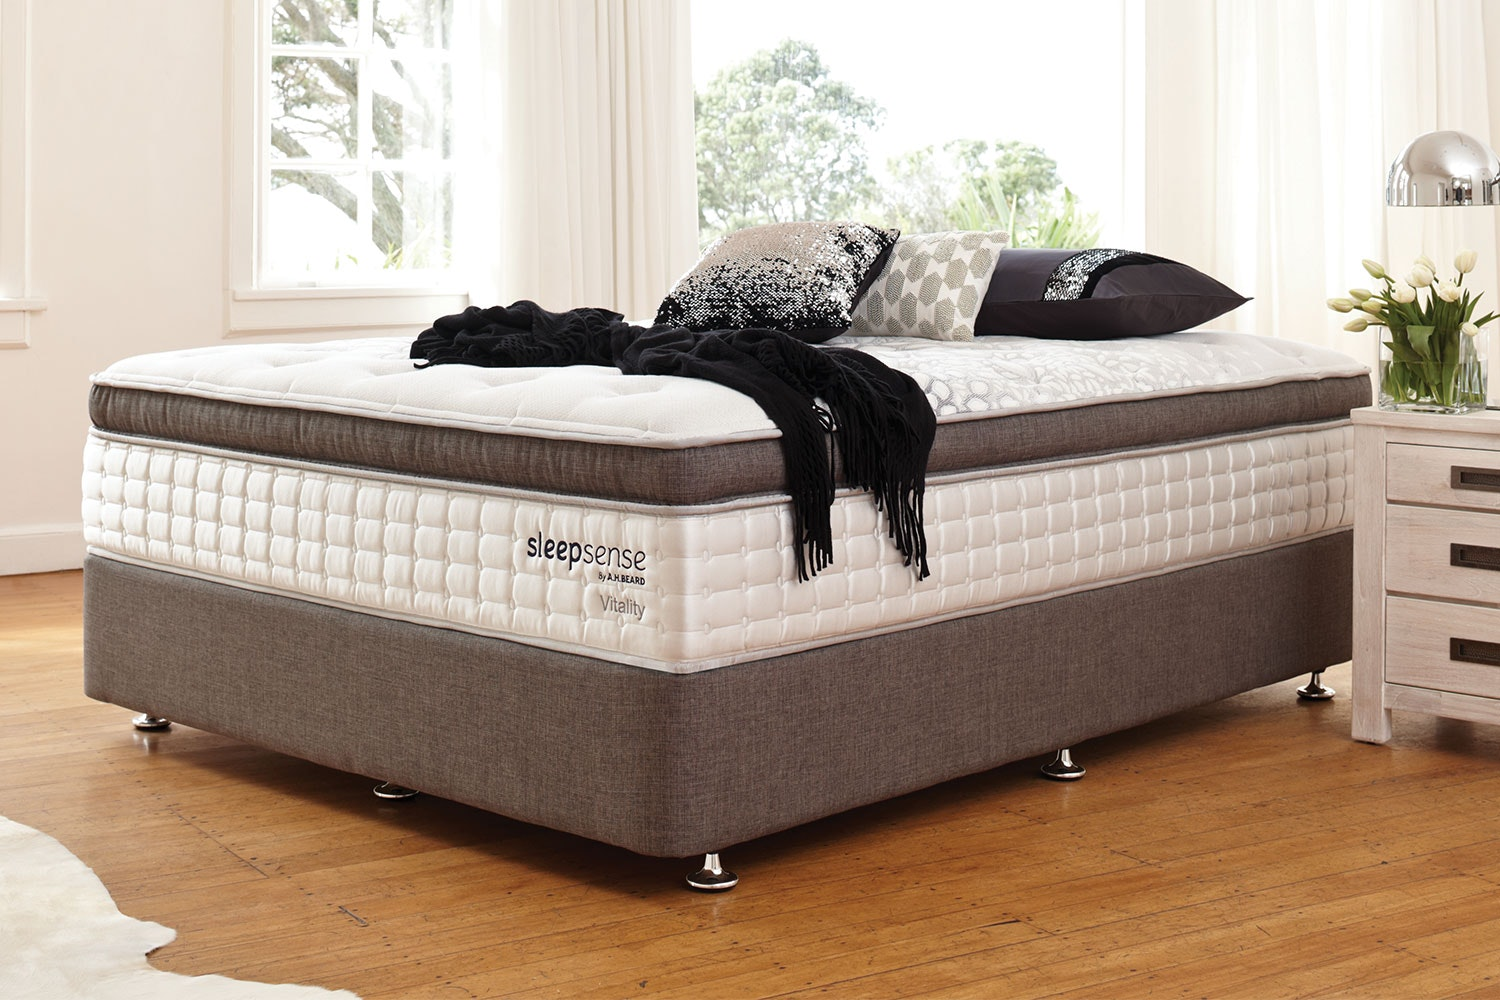 Vitality Double Bed by Sleepsense